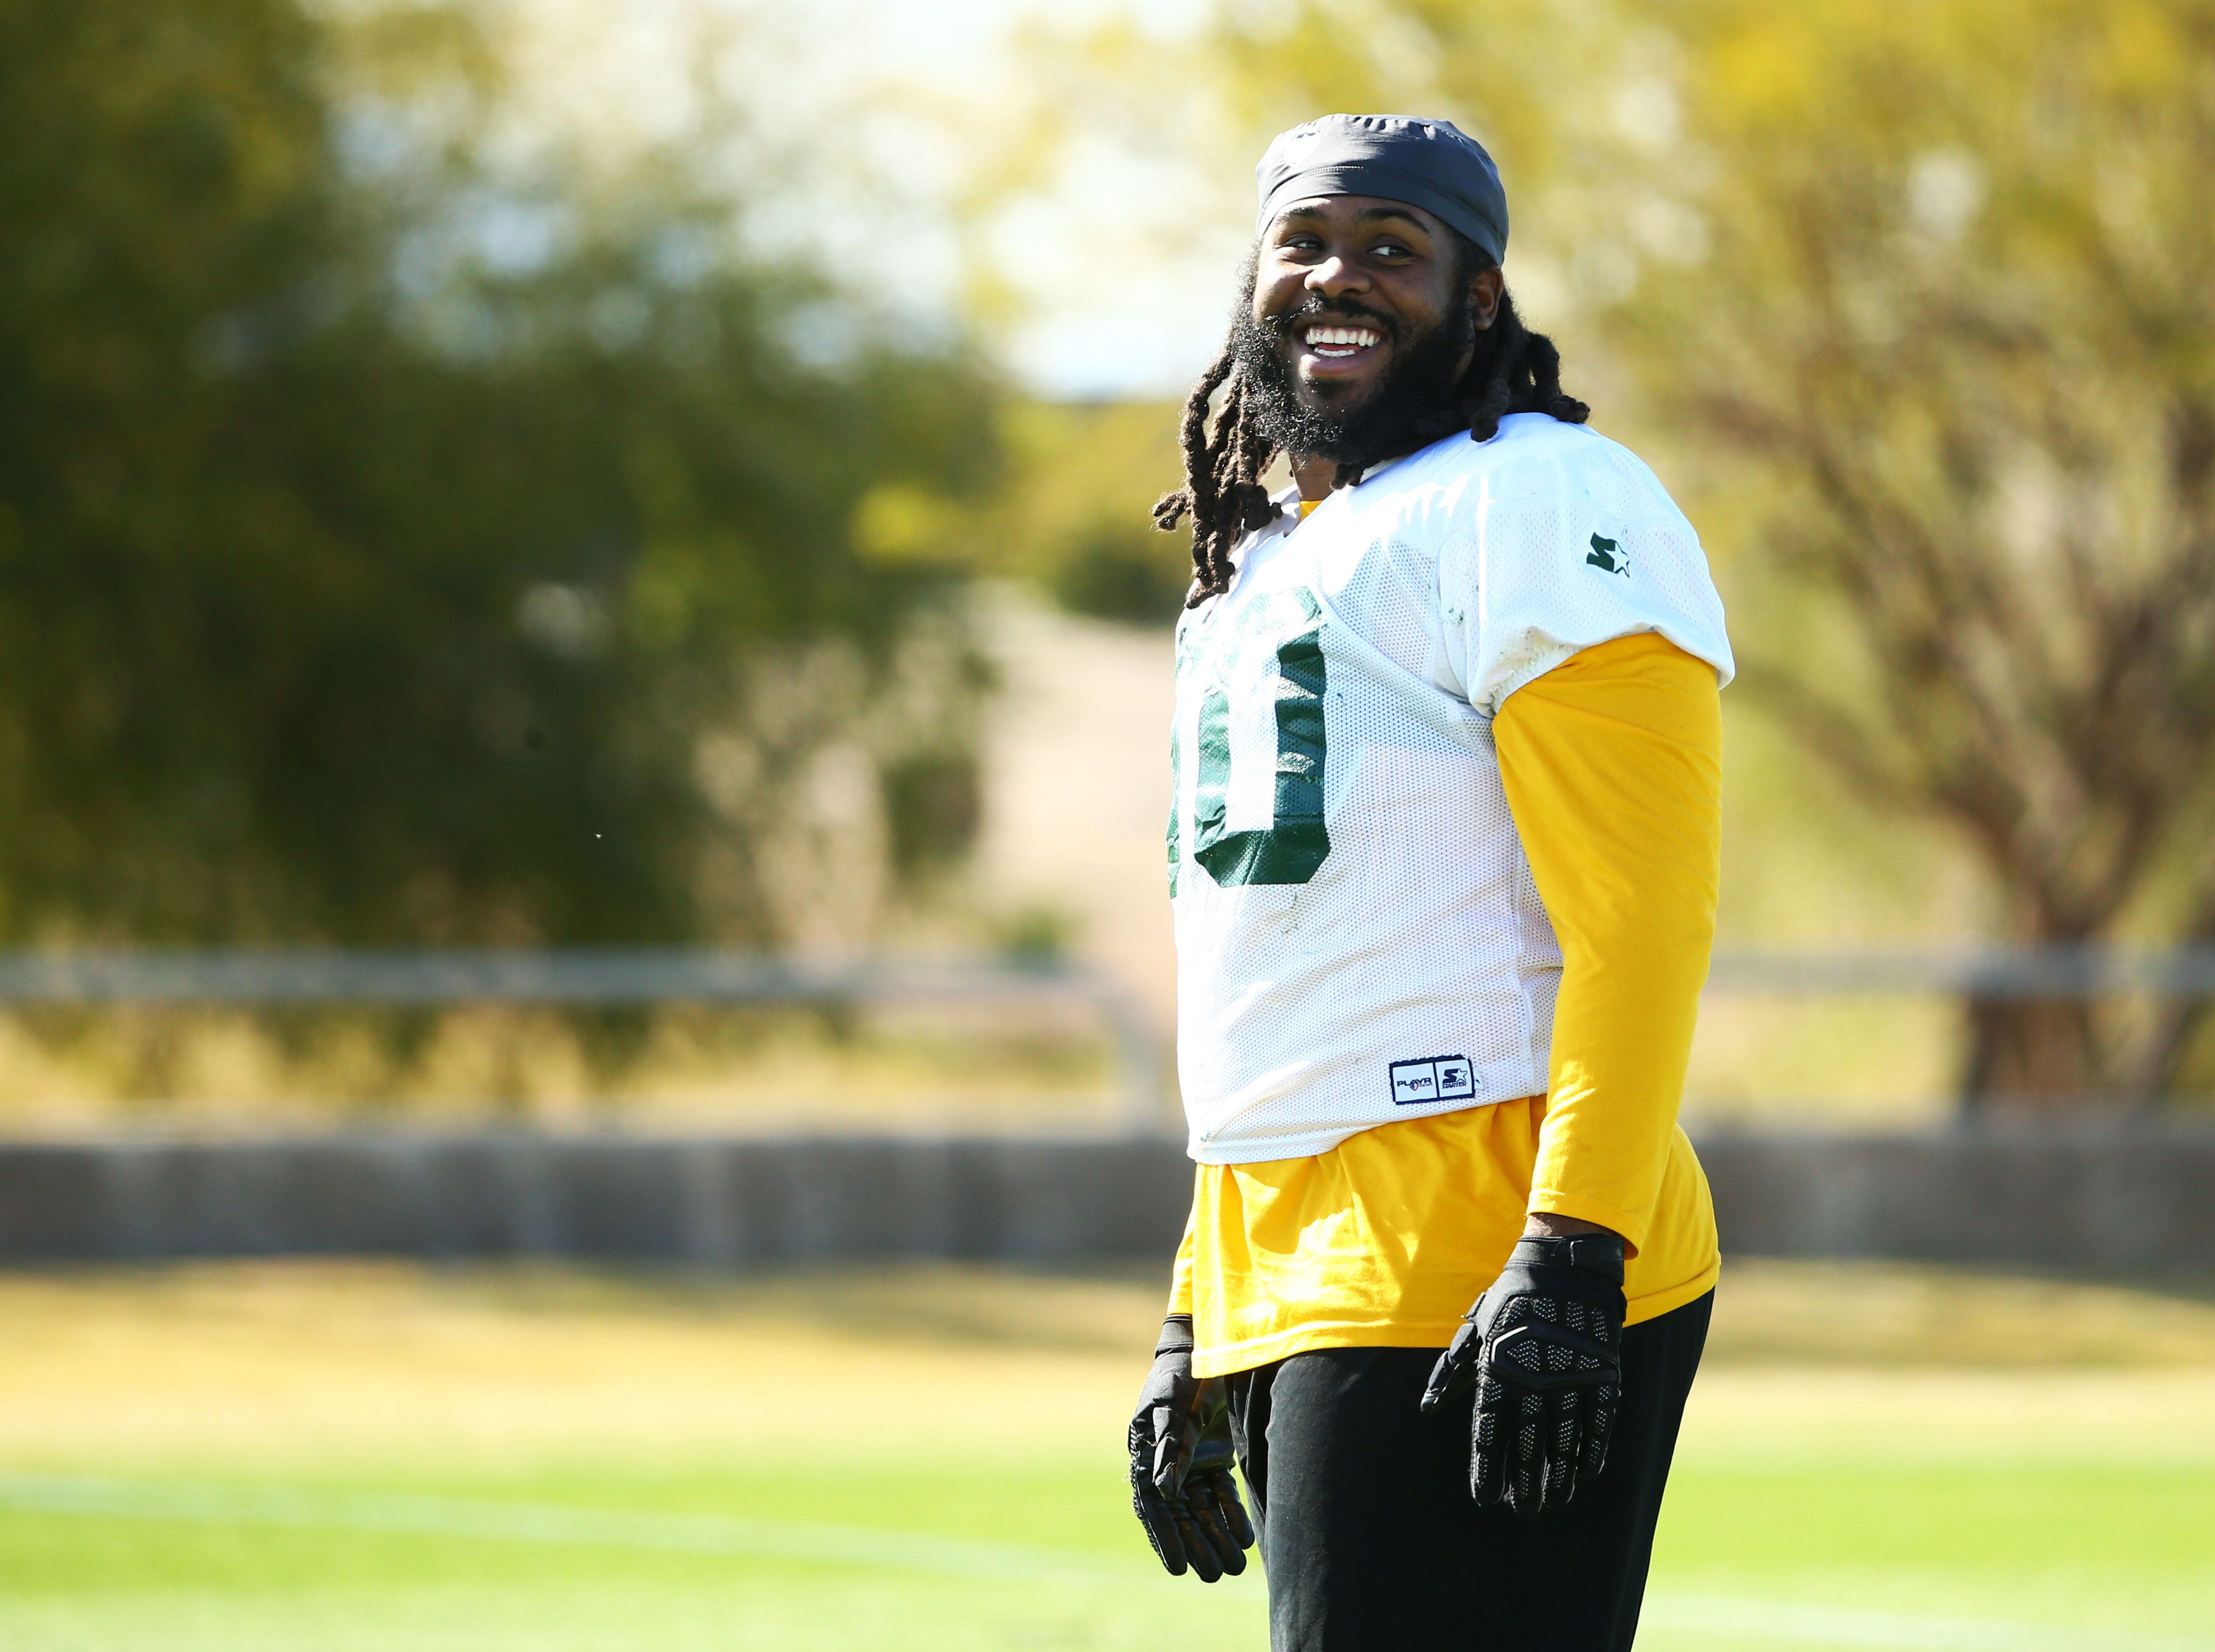 Hotshots defensive tackle Will Sutton (90) smiles during a practice Feb. 5 at State Farm Stadium.